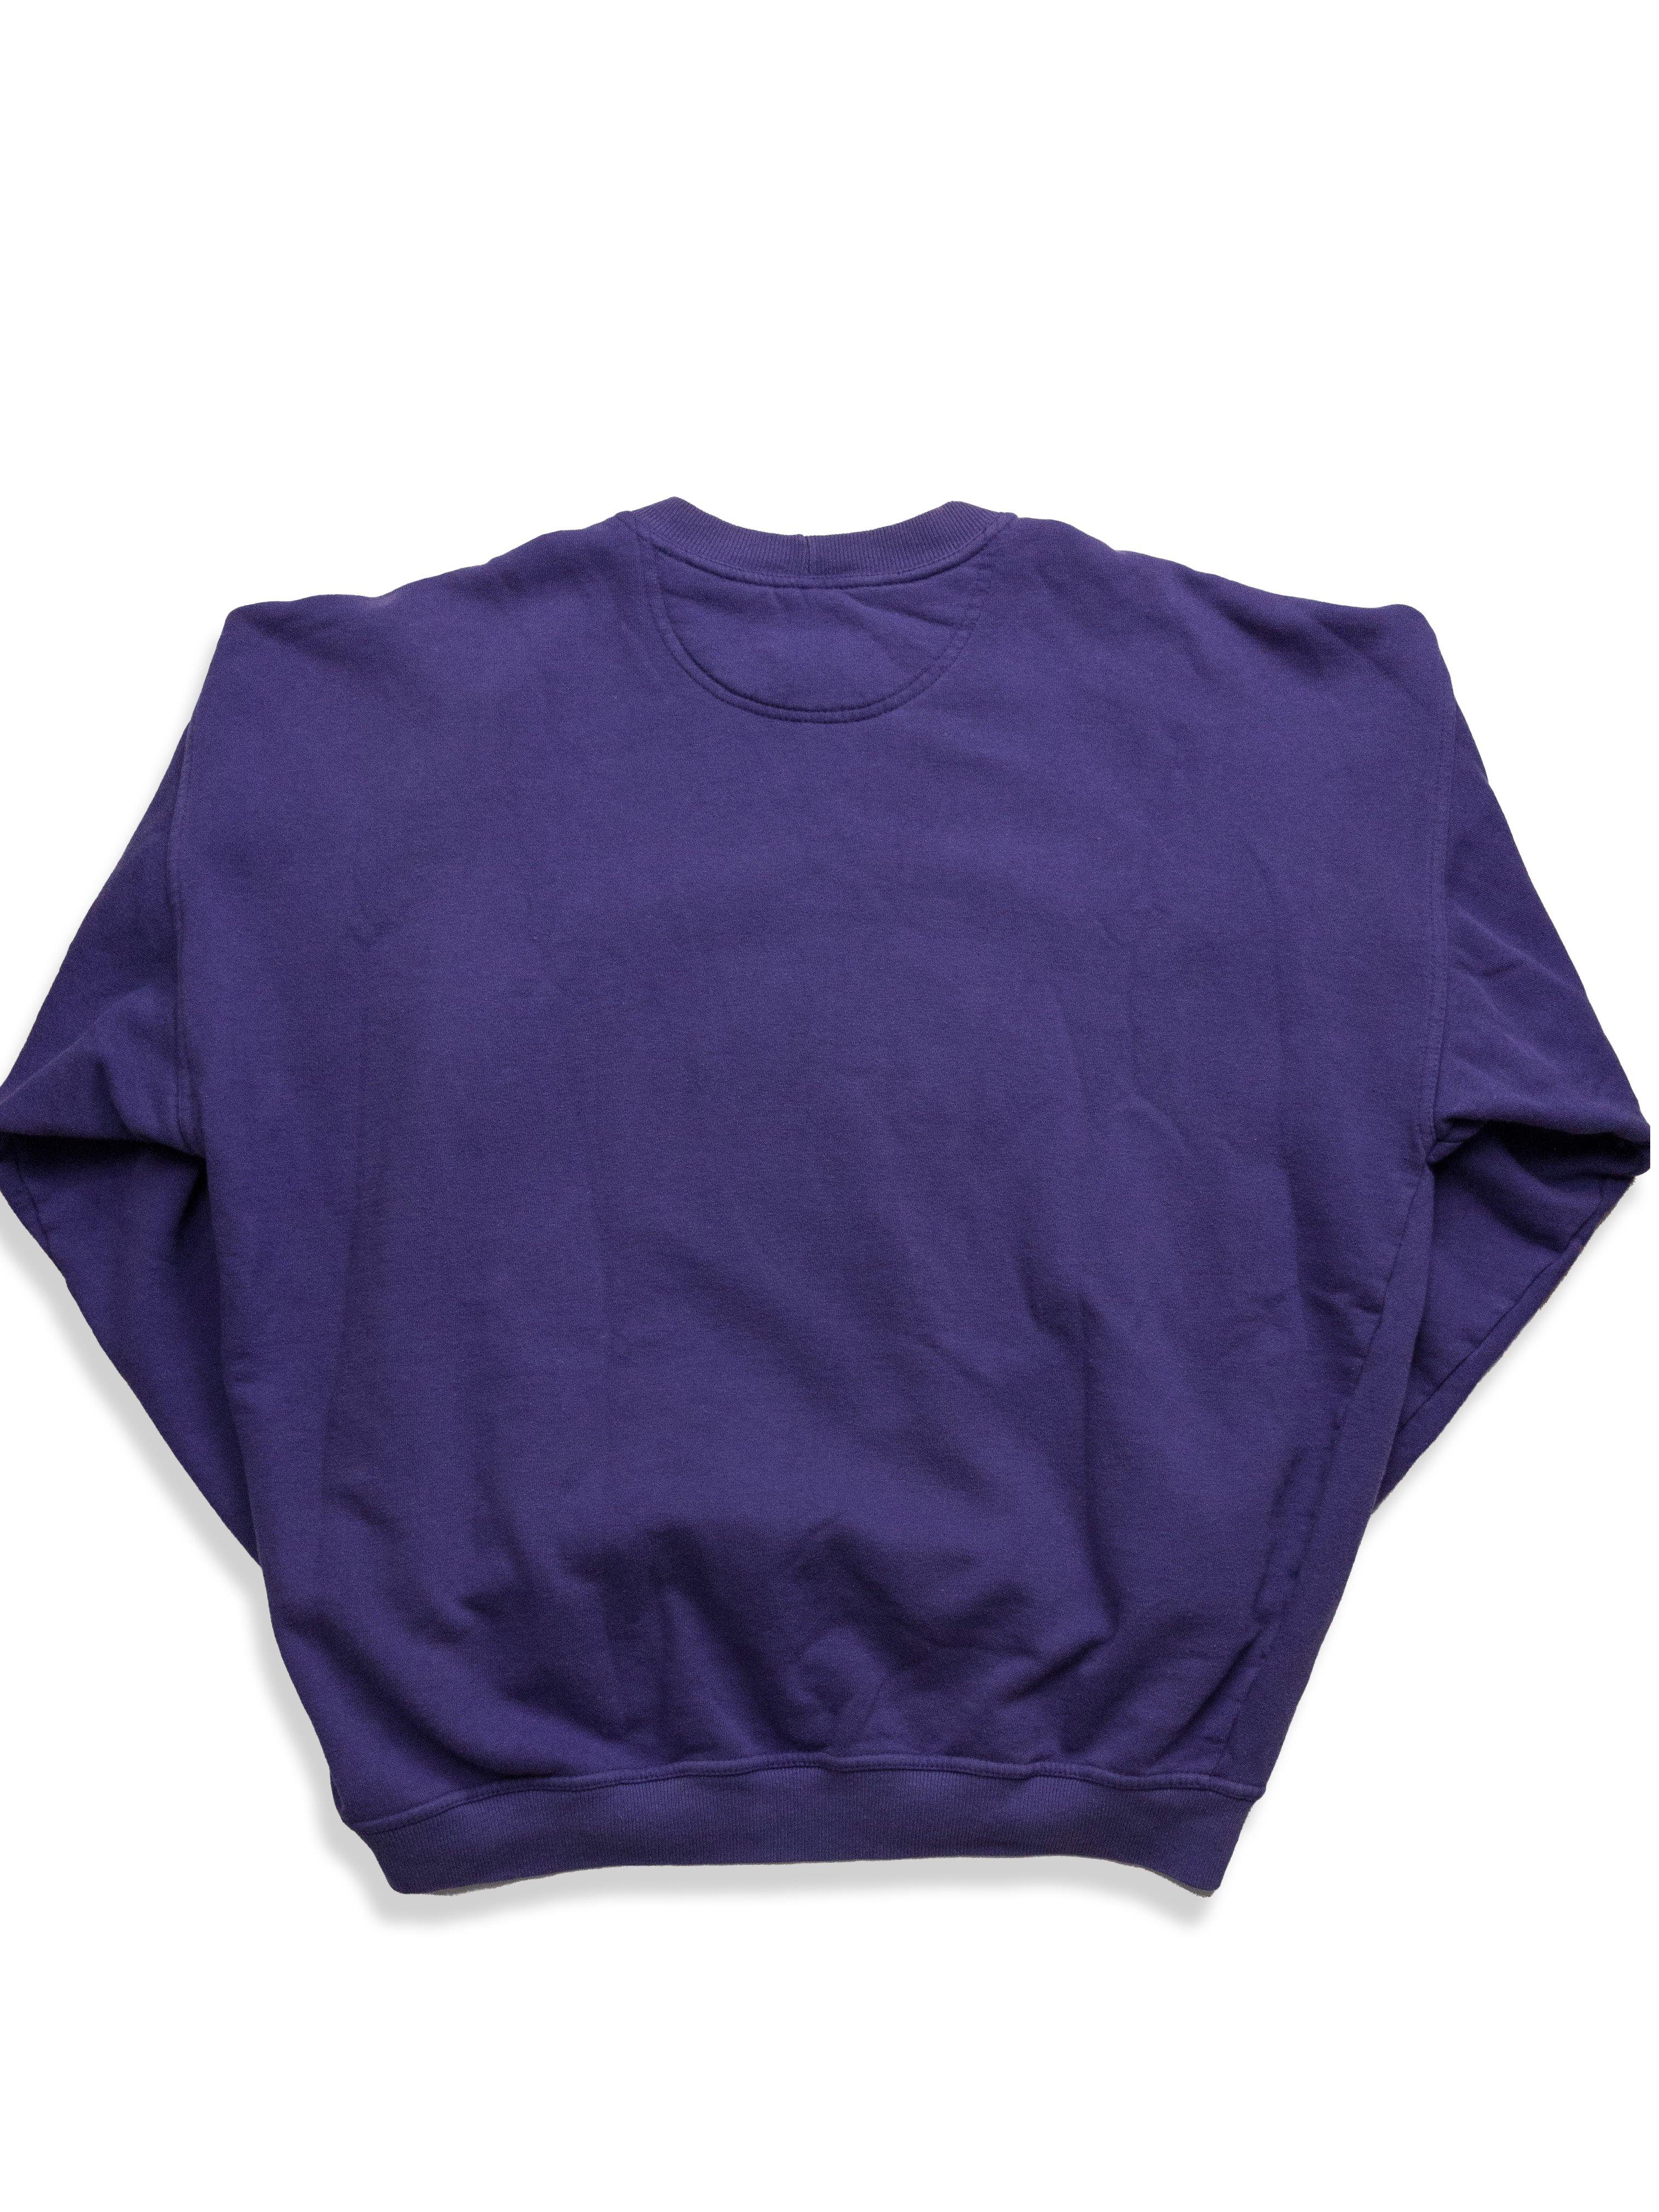 90s OLD GAP Plain Sweat -Purple【XL】 - onyourmark